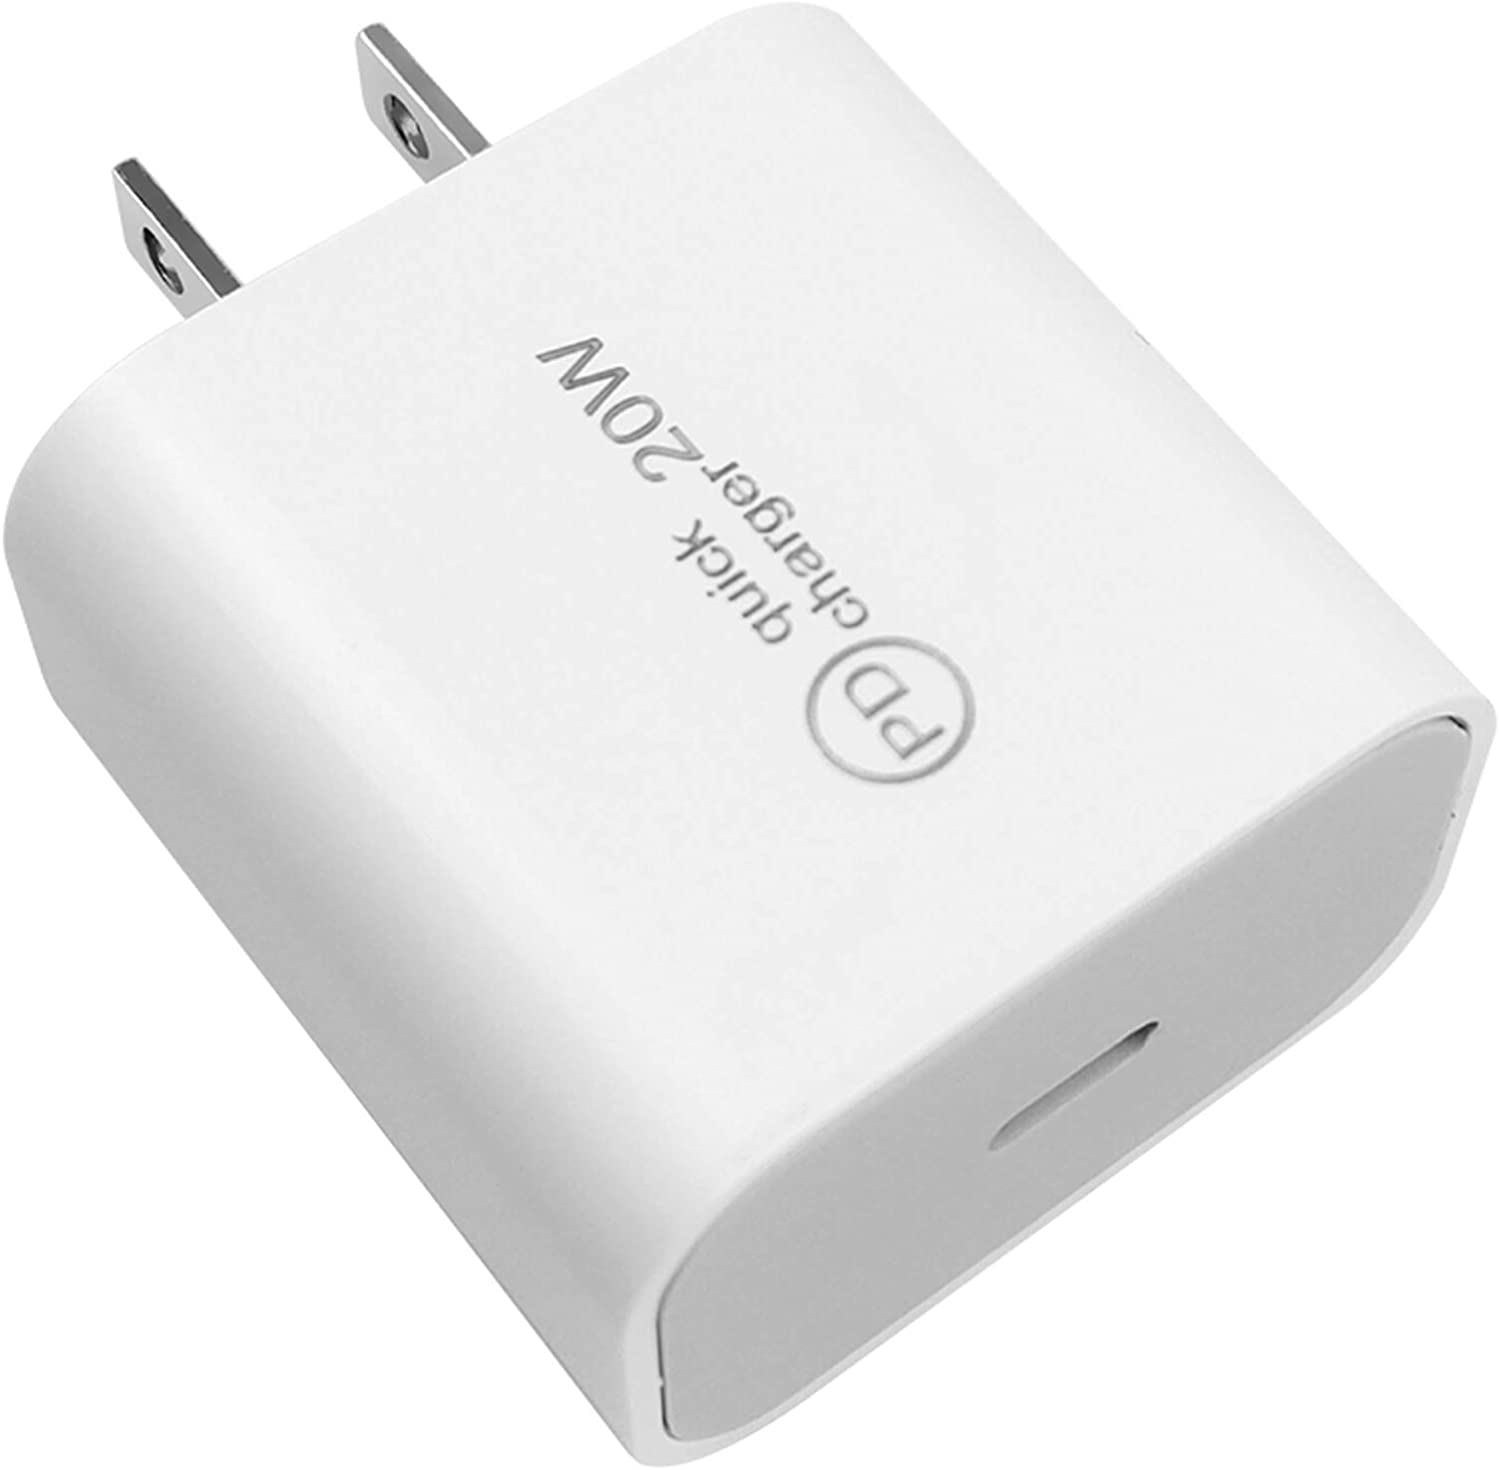 20W USB-C Power Adapter Fast Charging Wall Charger Power Delivery Type C PD3.0 QC3.0 Compatible for iPhone 13 Series 12 Mini Pro Max SE 11 Pro Max XR 8 Plus Pixel Samsung Galaxy S20/S10 LG